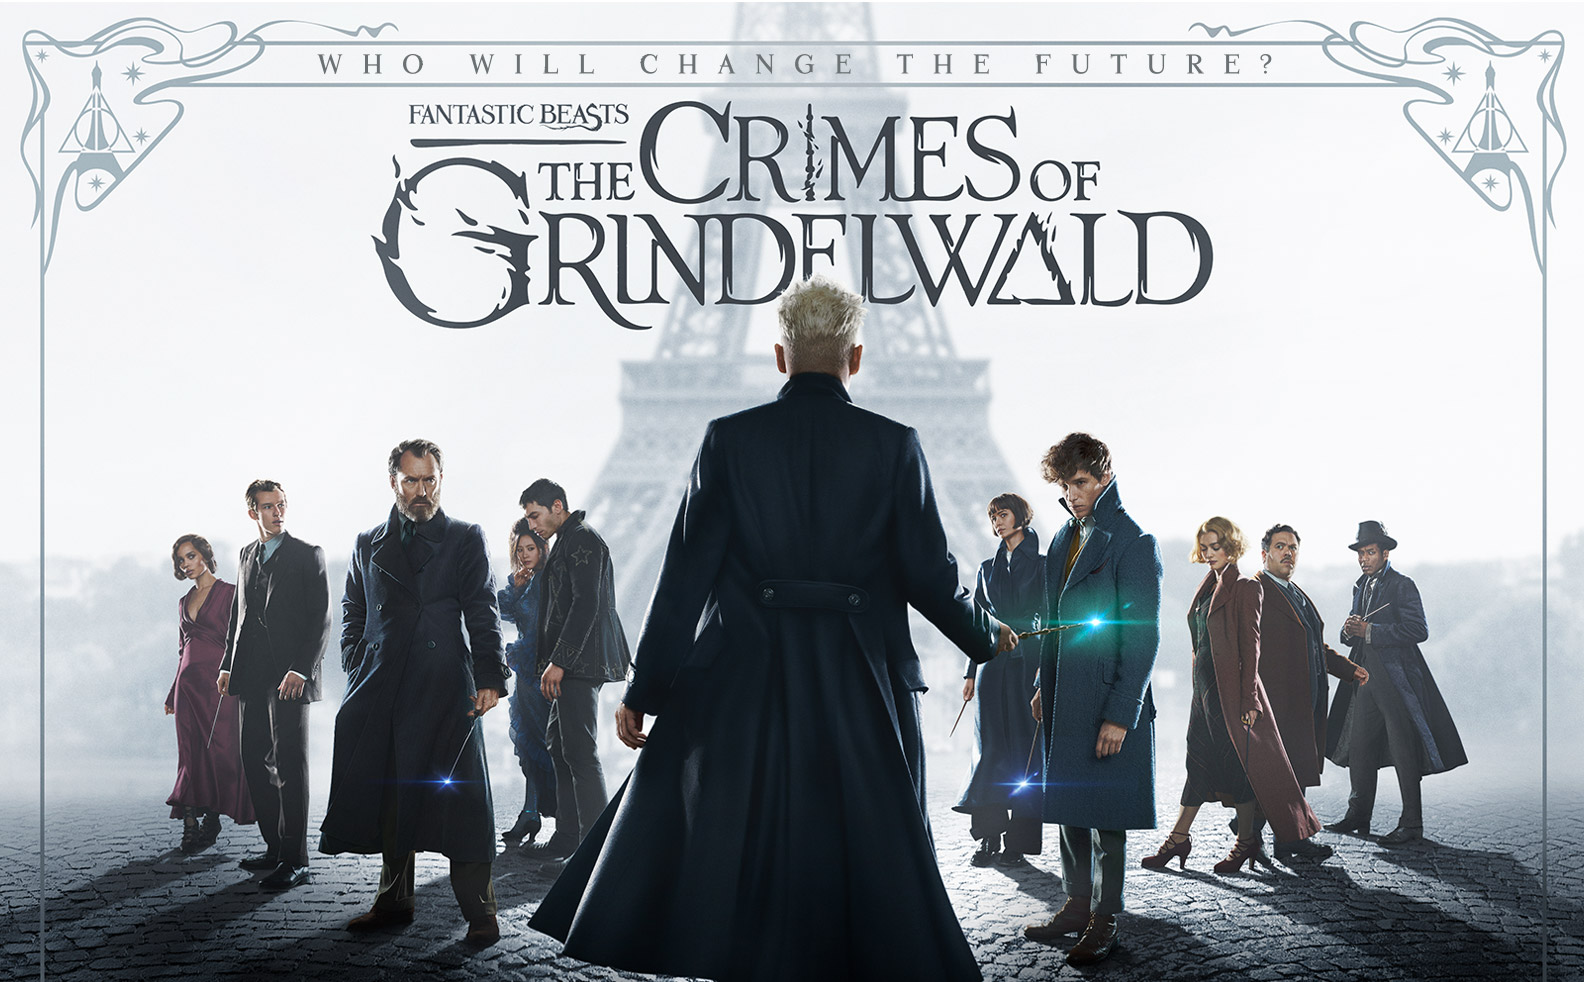 [Review] Fantastic Beasts and Where to Find Them: Crimes of Grindelwald